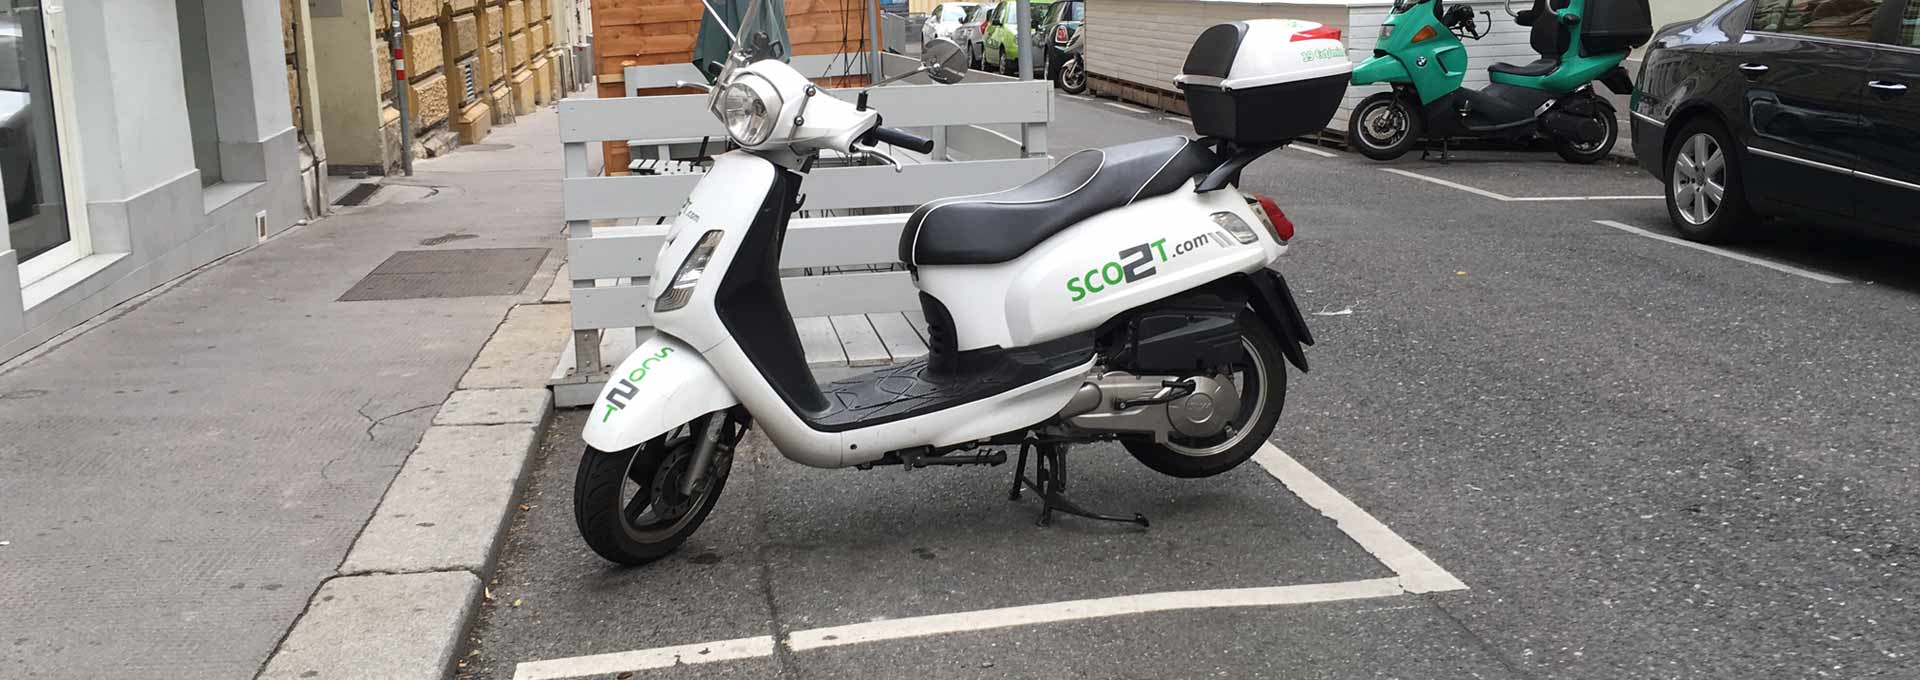 Using on demand scooters in Vienna Austria